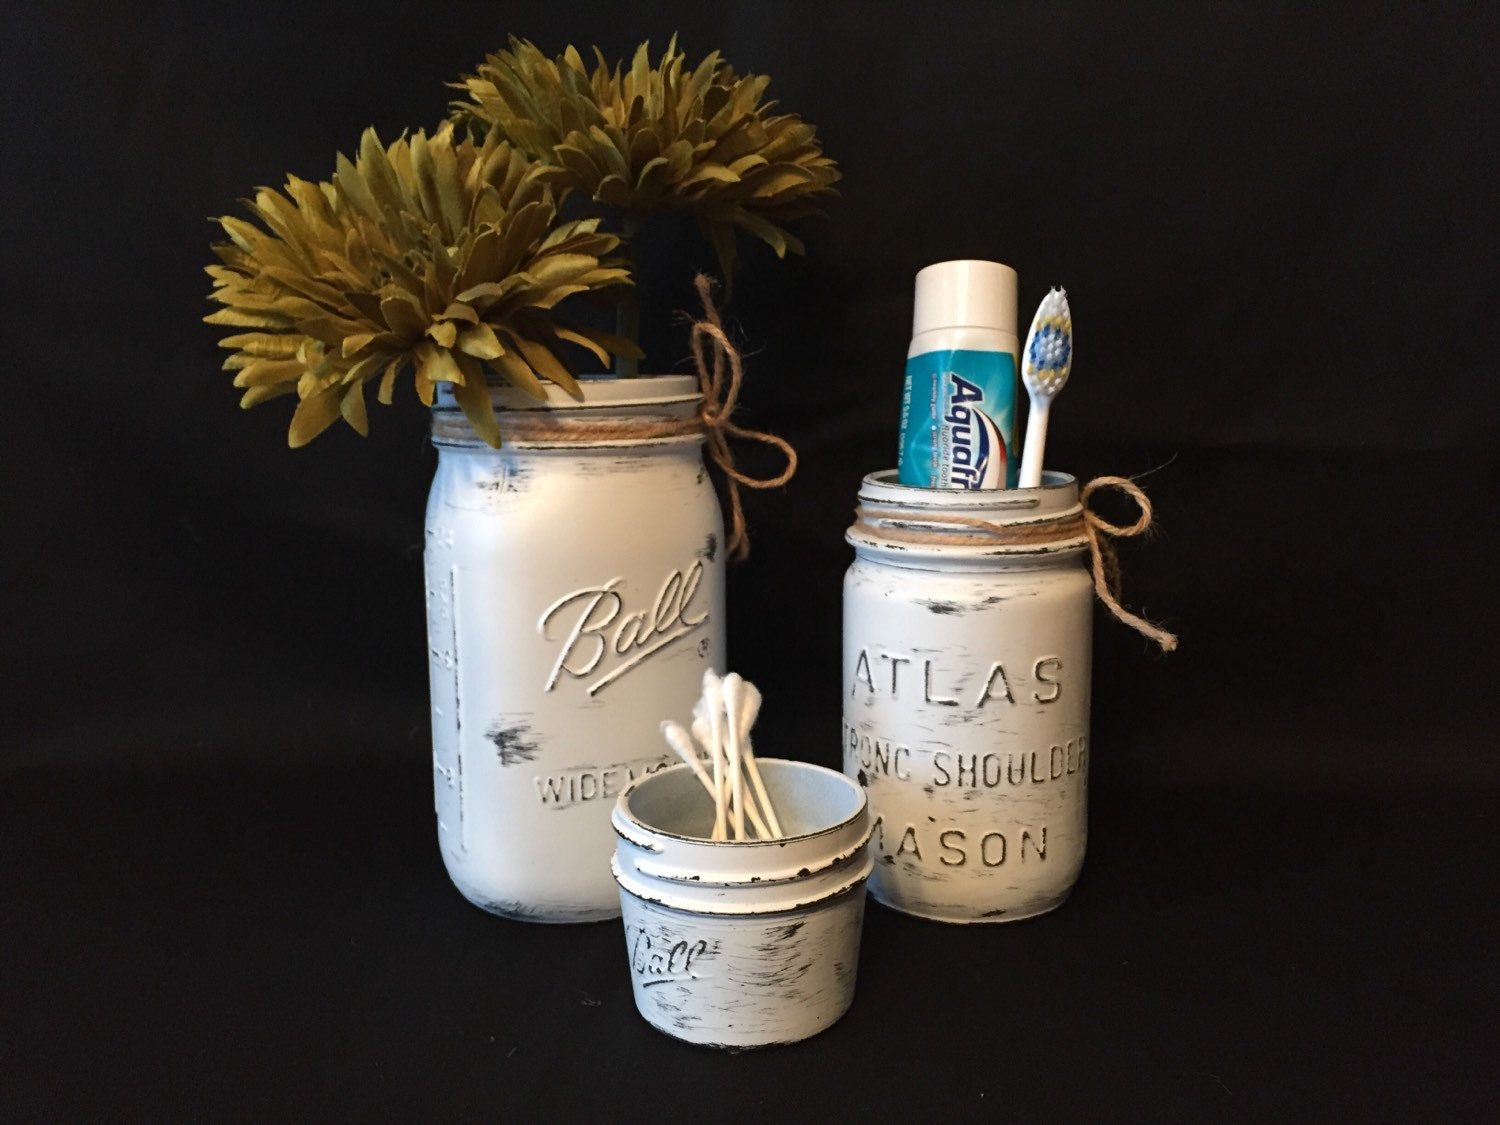 Set of White Mason Jars, Bathroom Set, Painted and Distressed Jars, Upcycled and Repurposed Home Decor, Organization by DesignCreateInspire on Etsy